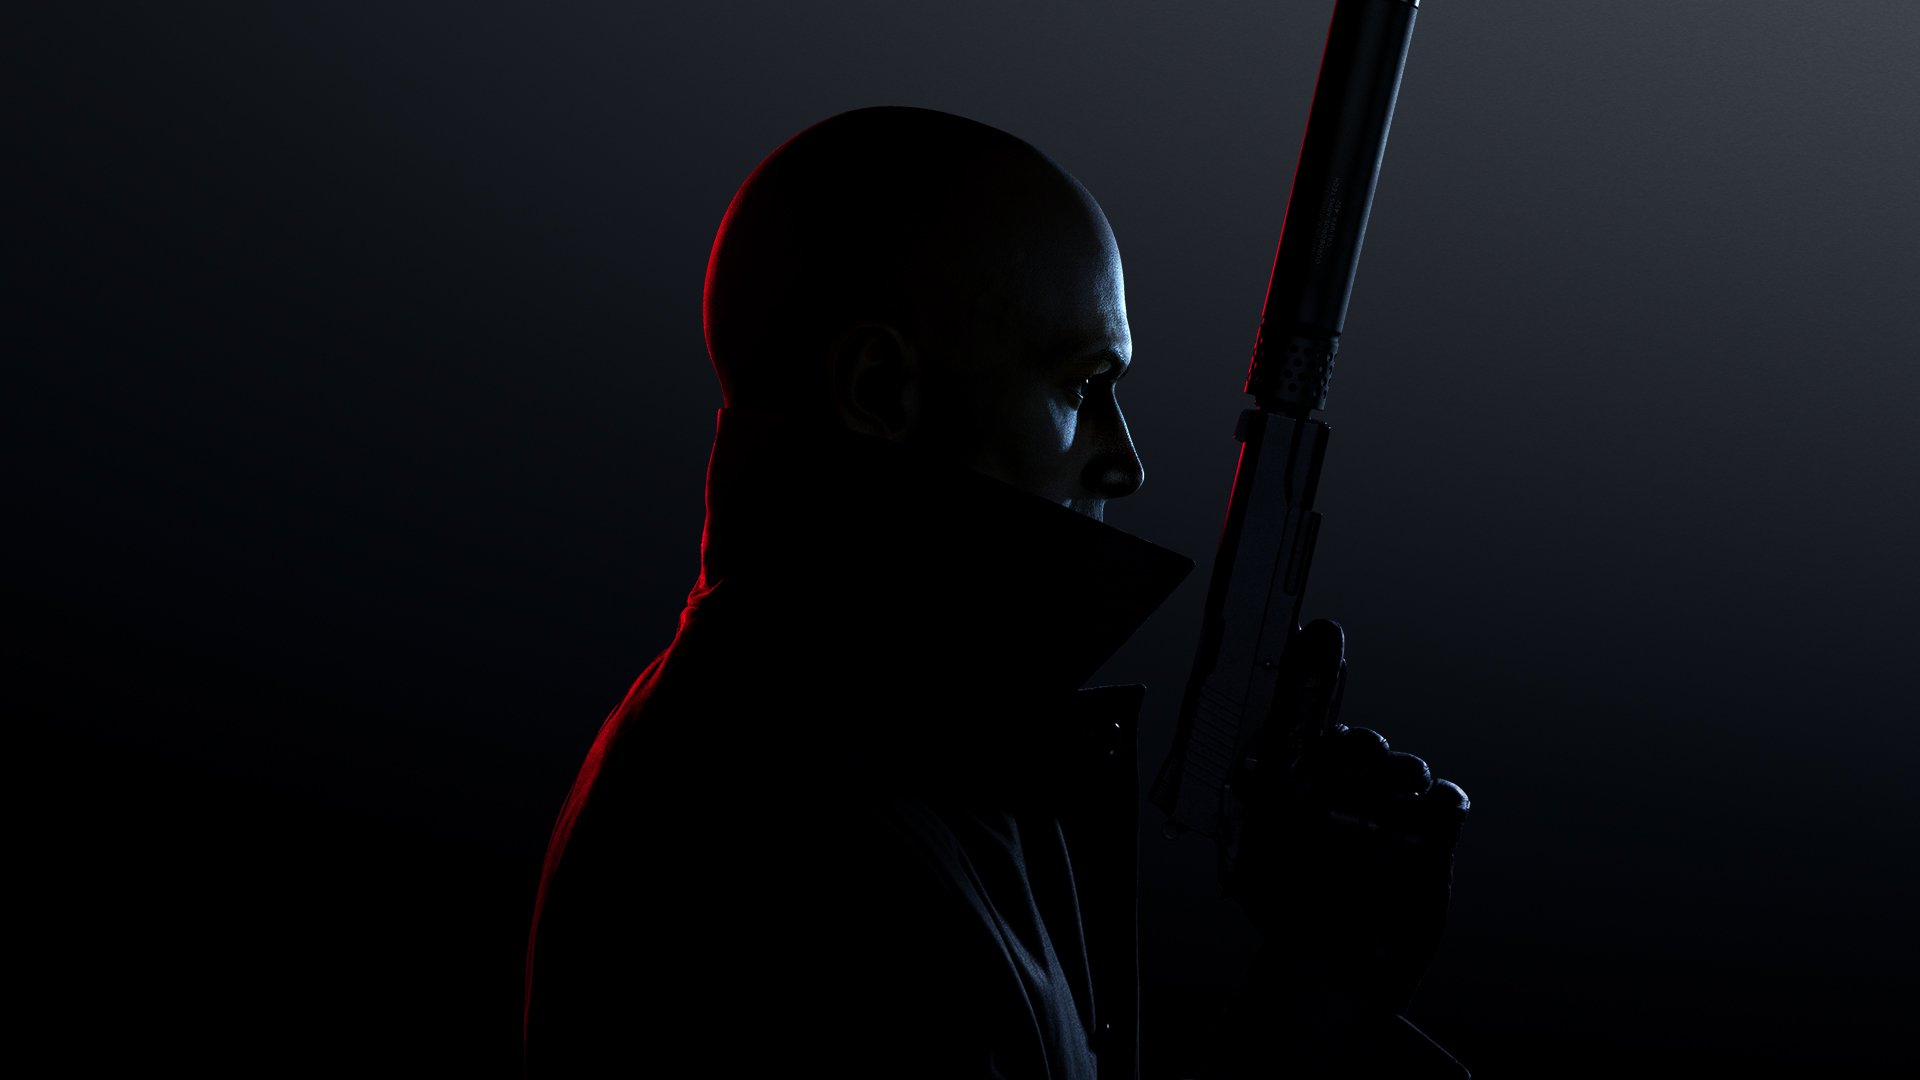 Hitman 3 Players on PC Will Have Some Difficulties Transferring Their Progress from Hitman 2